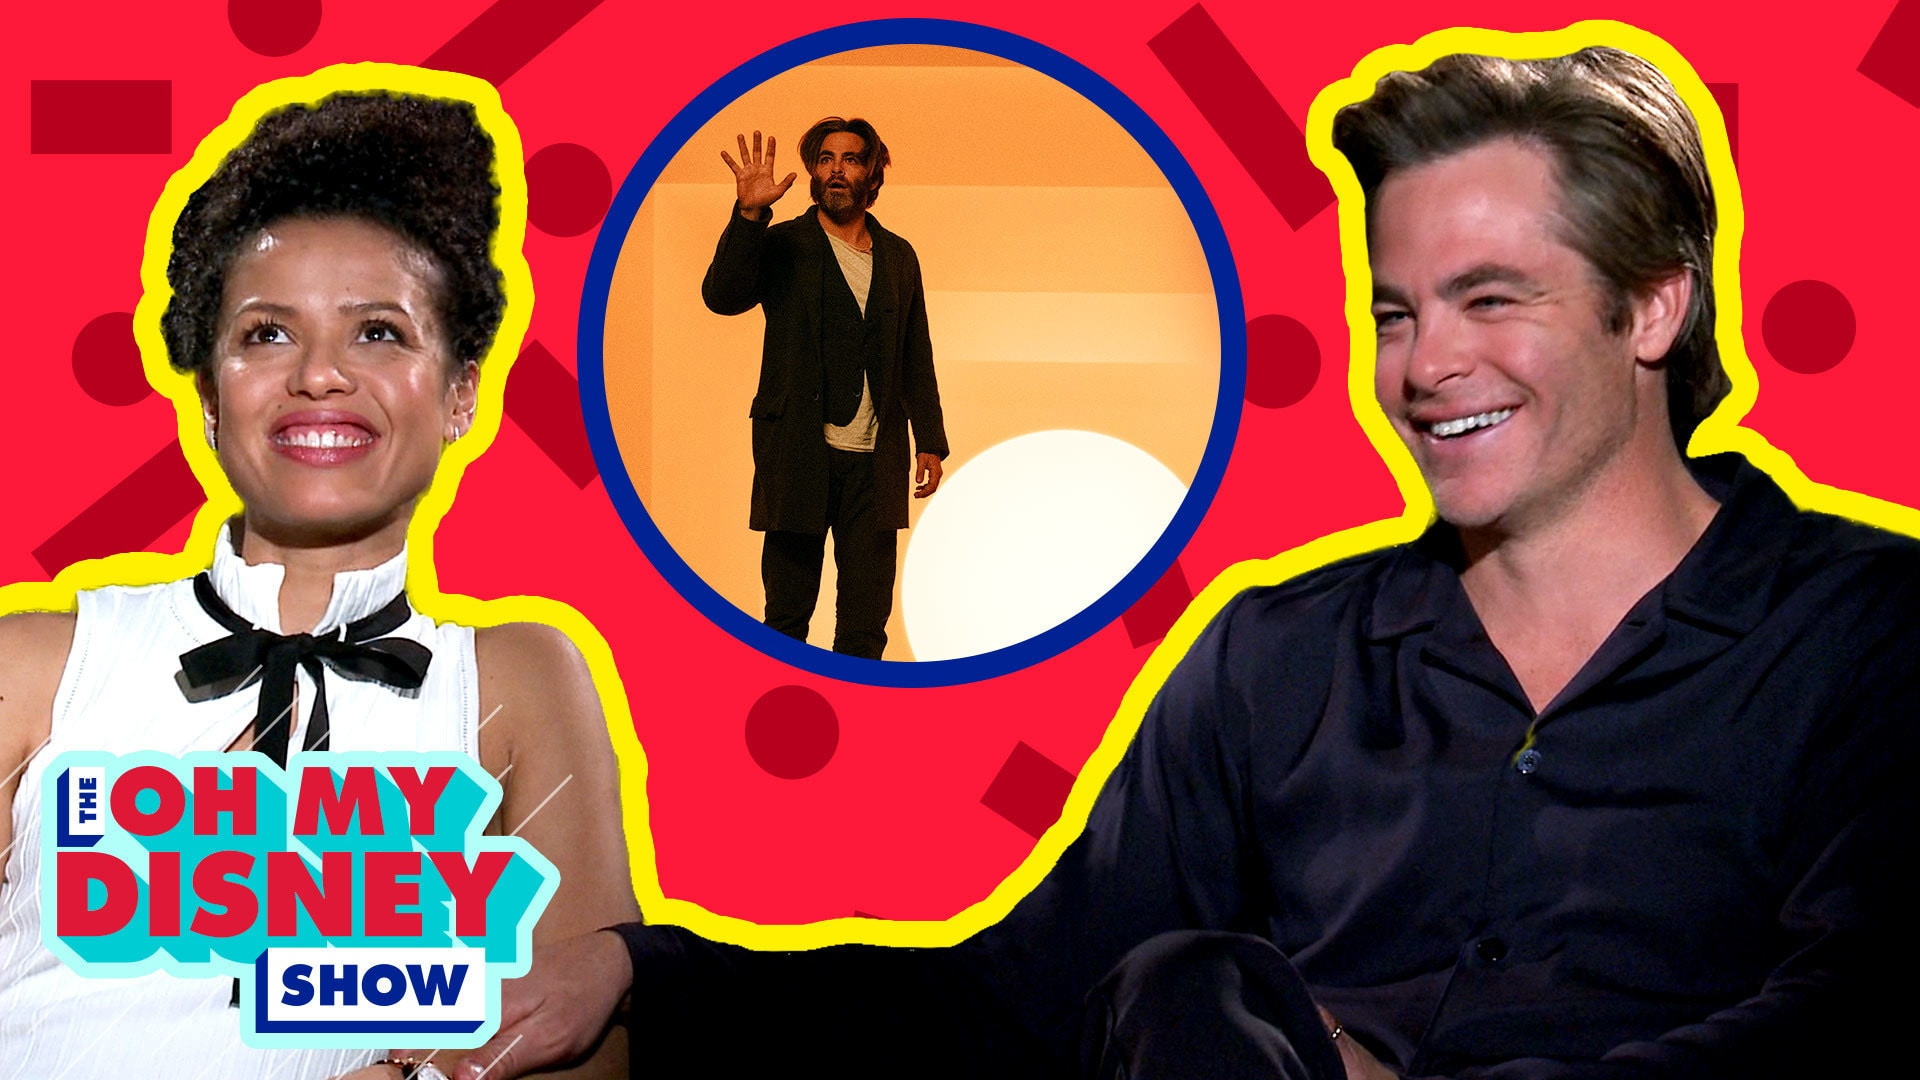 Chris Pine and Gugu Mbatha-Raw on Filming A Wrinkle in Time | Oh My Disney Show by Oh My Disney